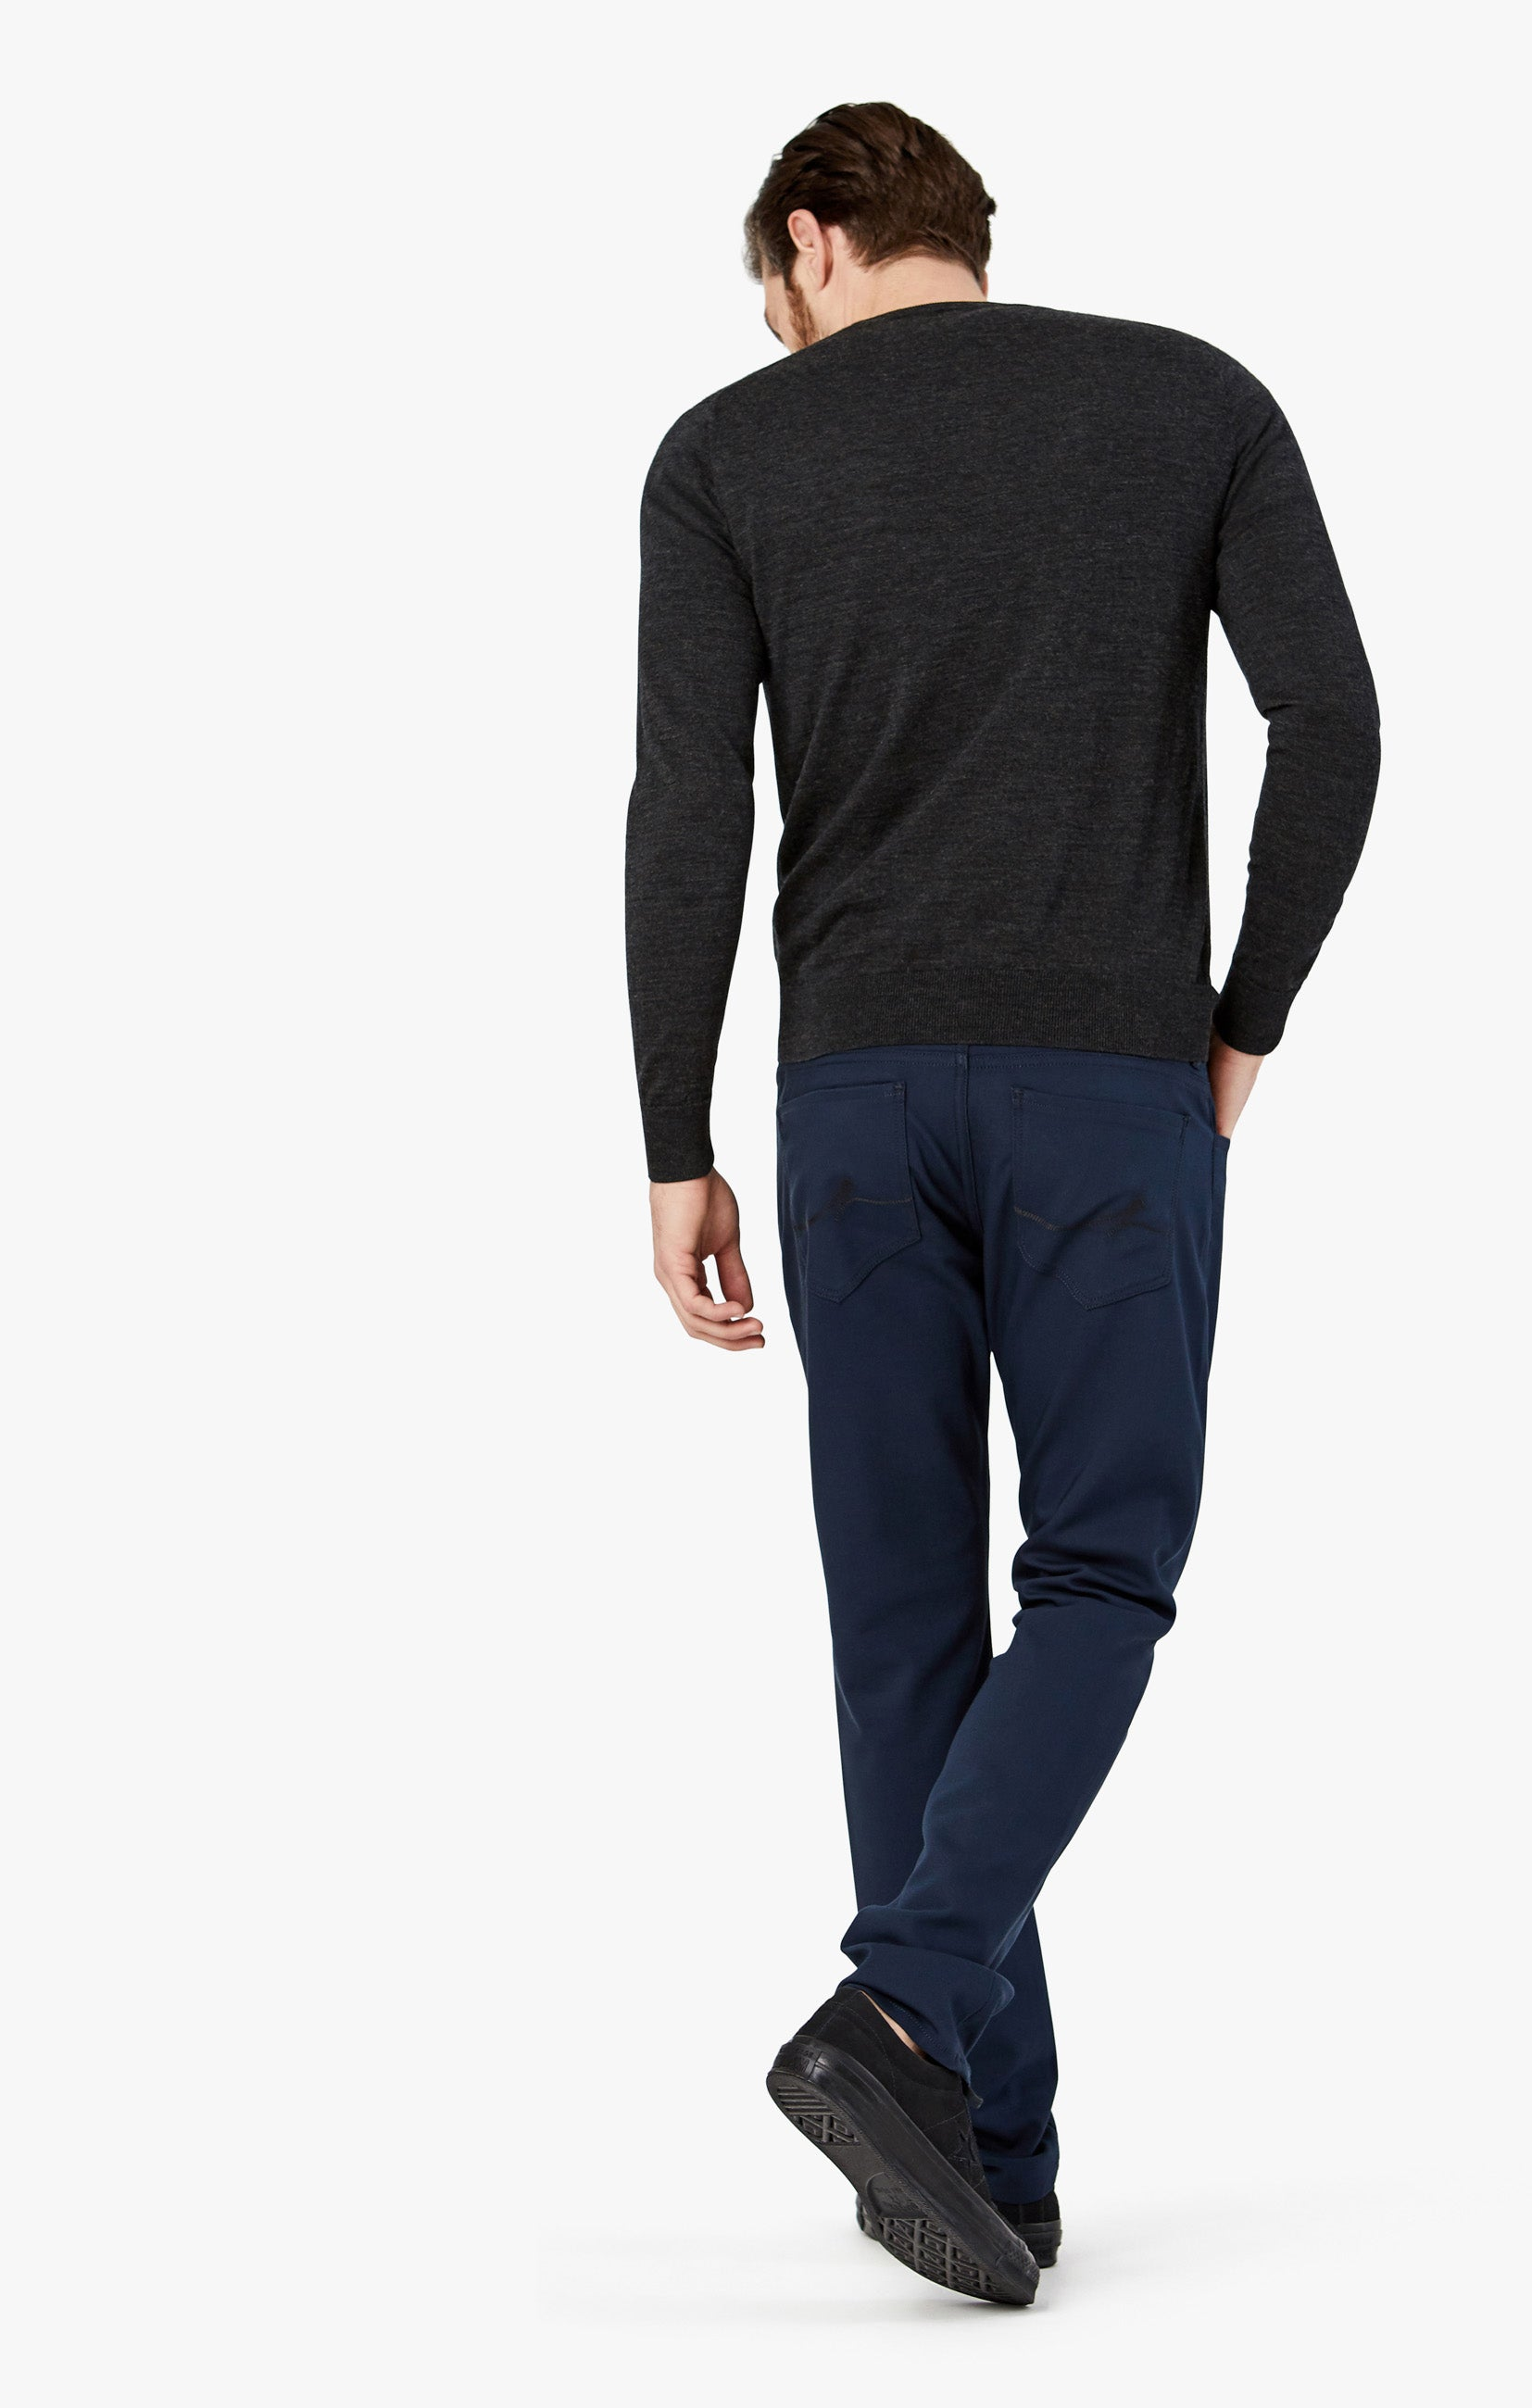 Courage Straight Leg Pants in Navy Commuter Image 9